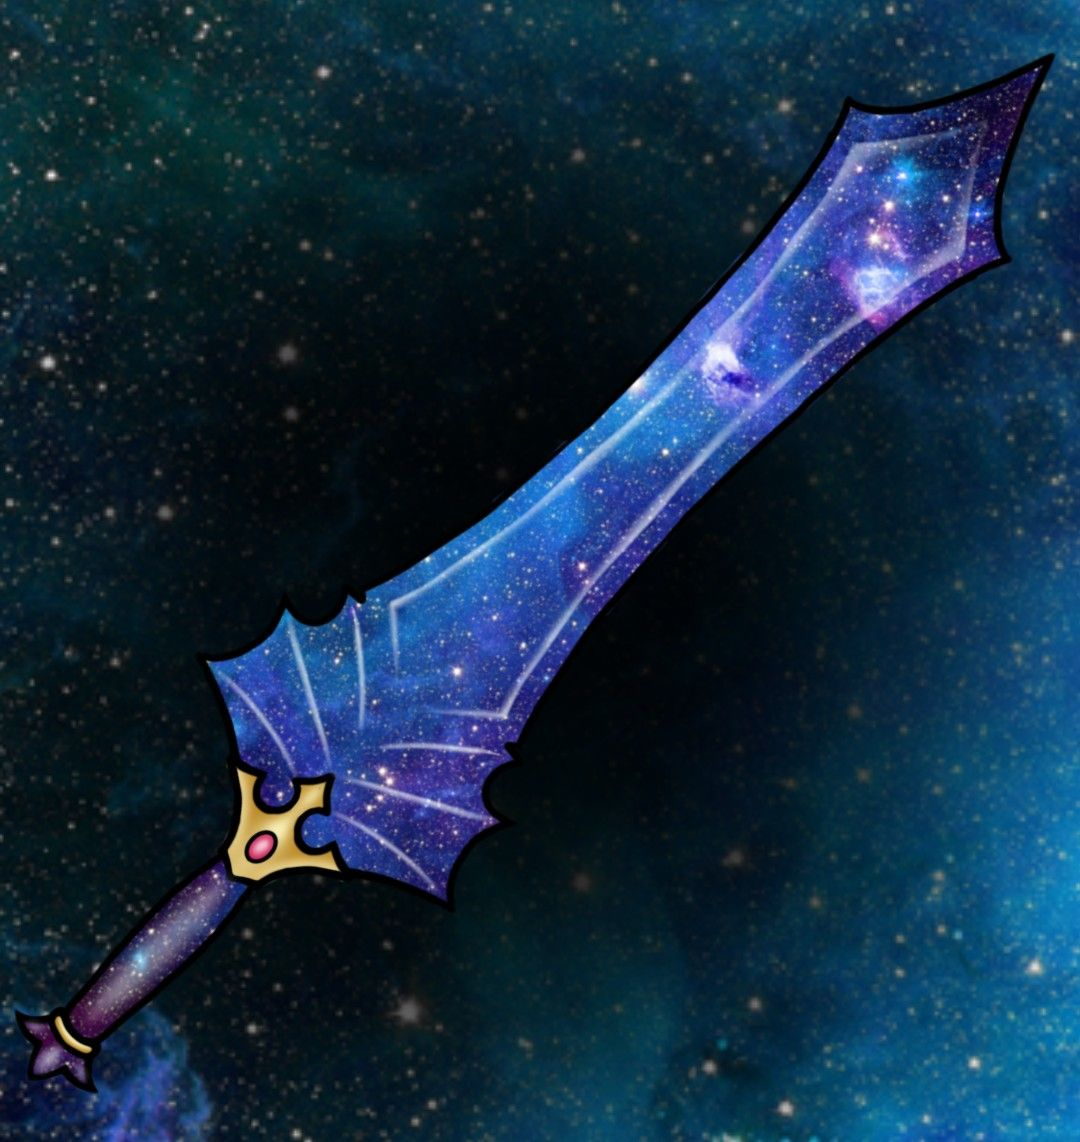 Pin On Fantasy Sci Fi Weapons